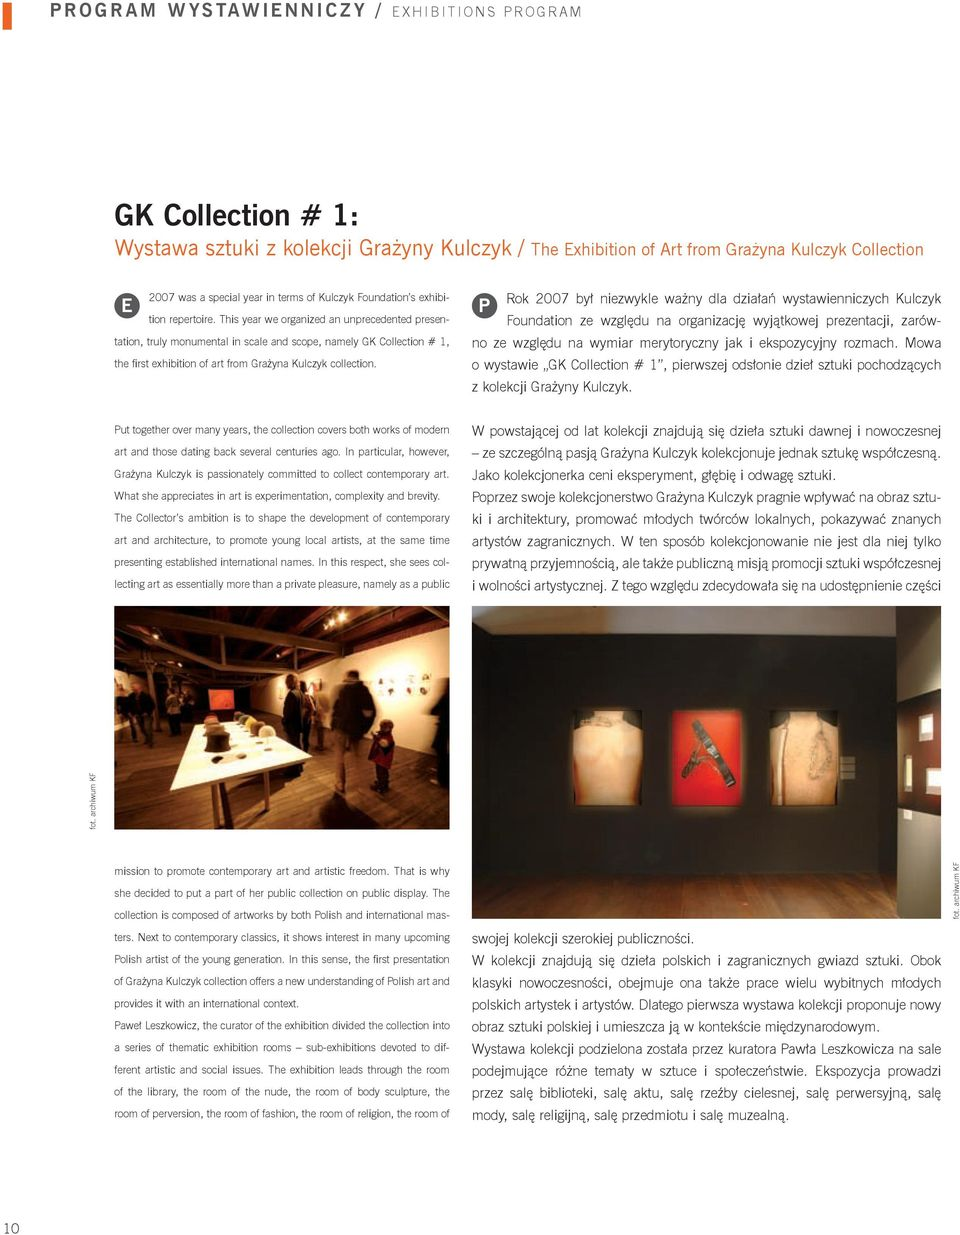 This year we organized an unprecedented presentation, truly monumental in scale and scope, namely GK Collection # 1, the first exhibition of art from Grażyna Kulczyk collection.